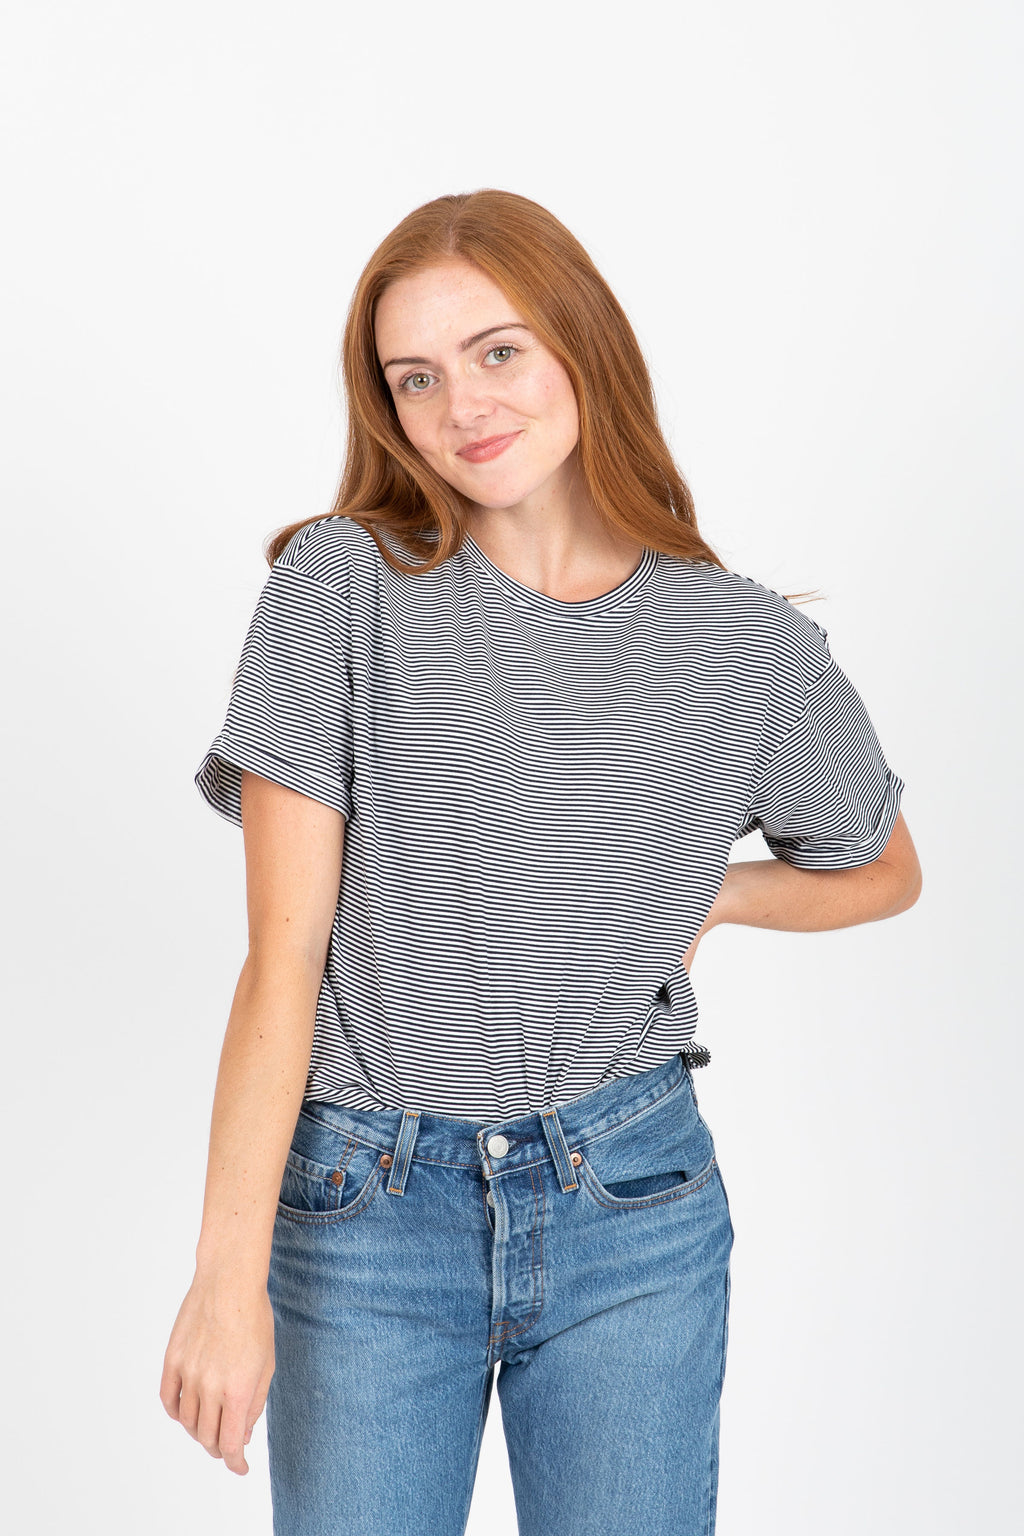 The Niko Striped Tee in Navy